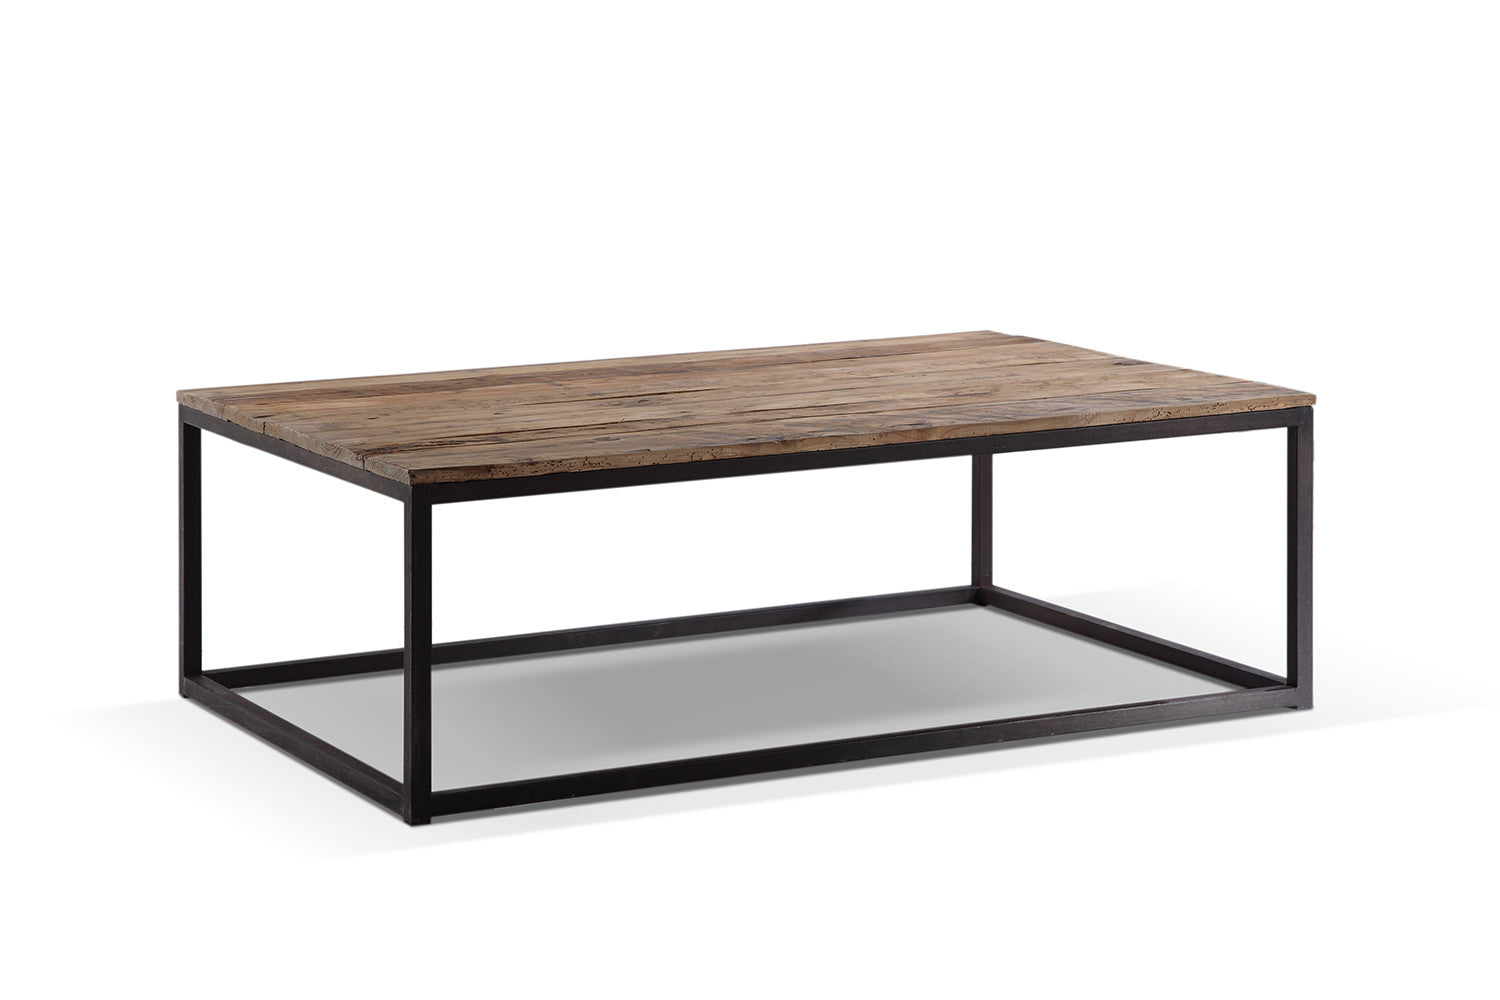 Table basse industrielle en m tal et bois rose moore - Table basse industrielle bois metal ...